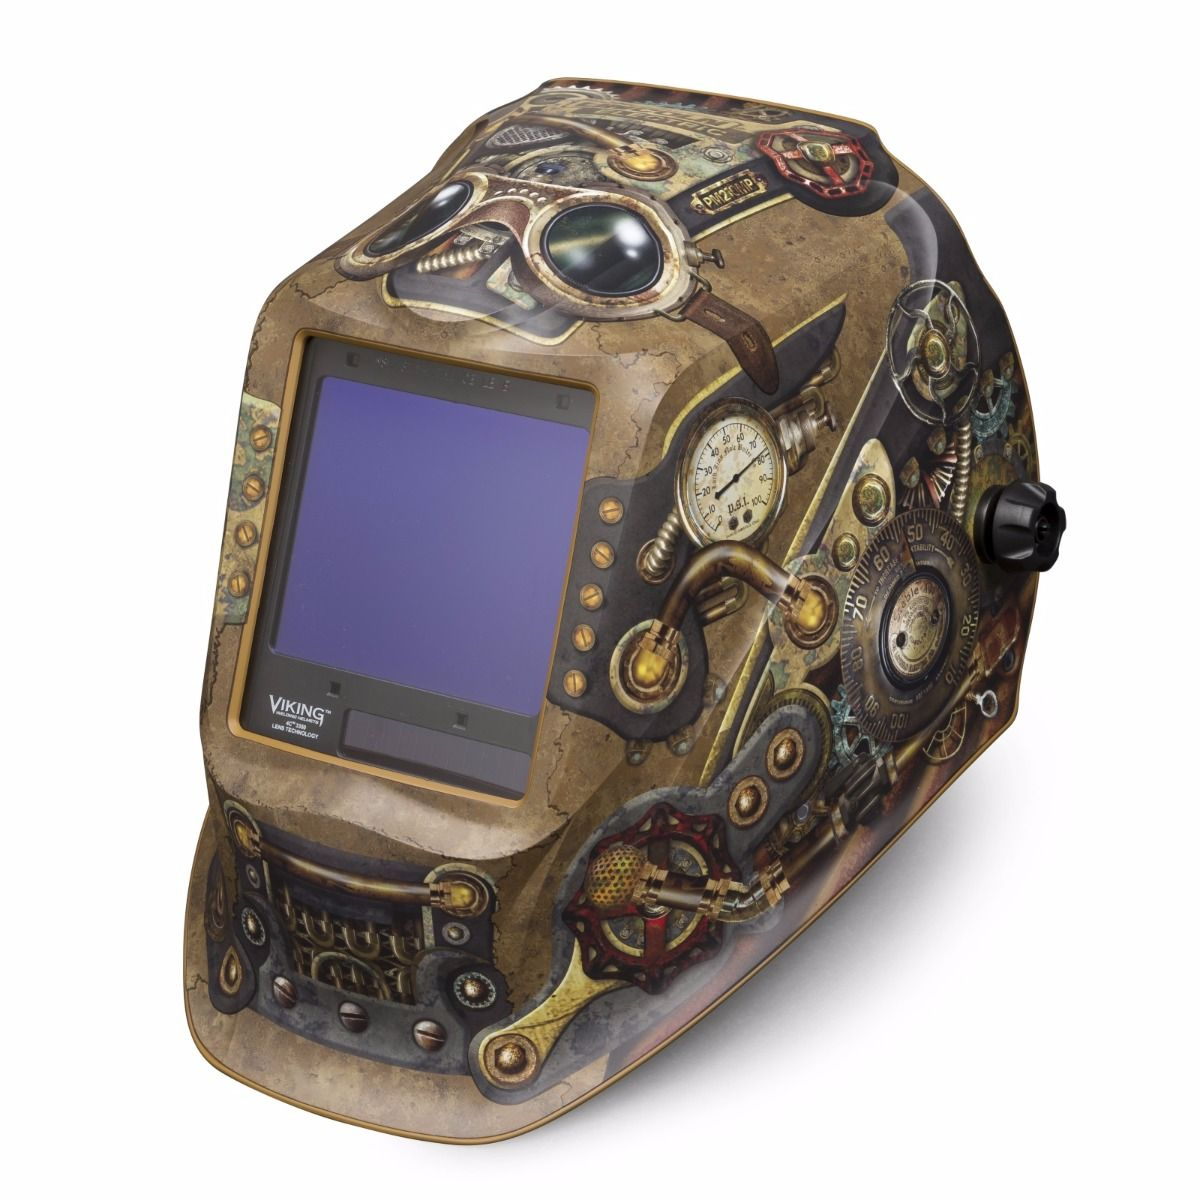 cc0d327a8 Lincoln Viking 3350 Series Steampunk Auto Darkening Welding Helmet  (K3428-3). Tap to expand